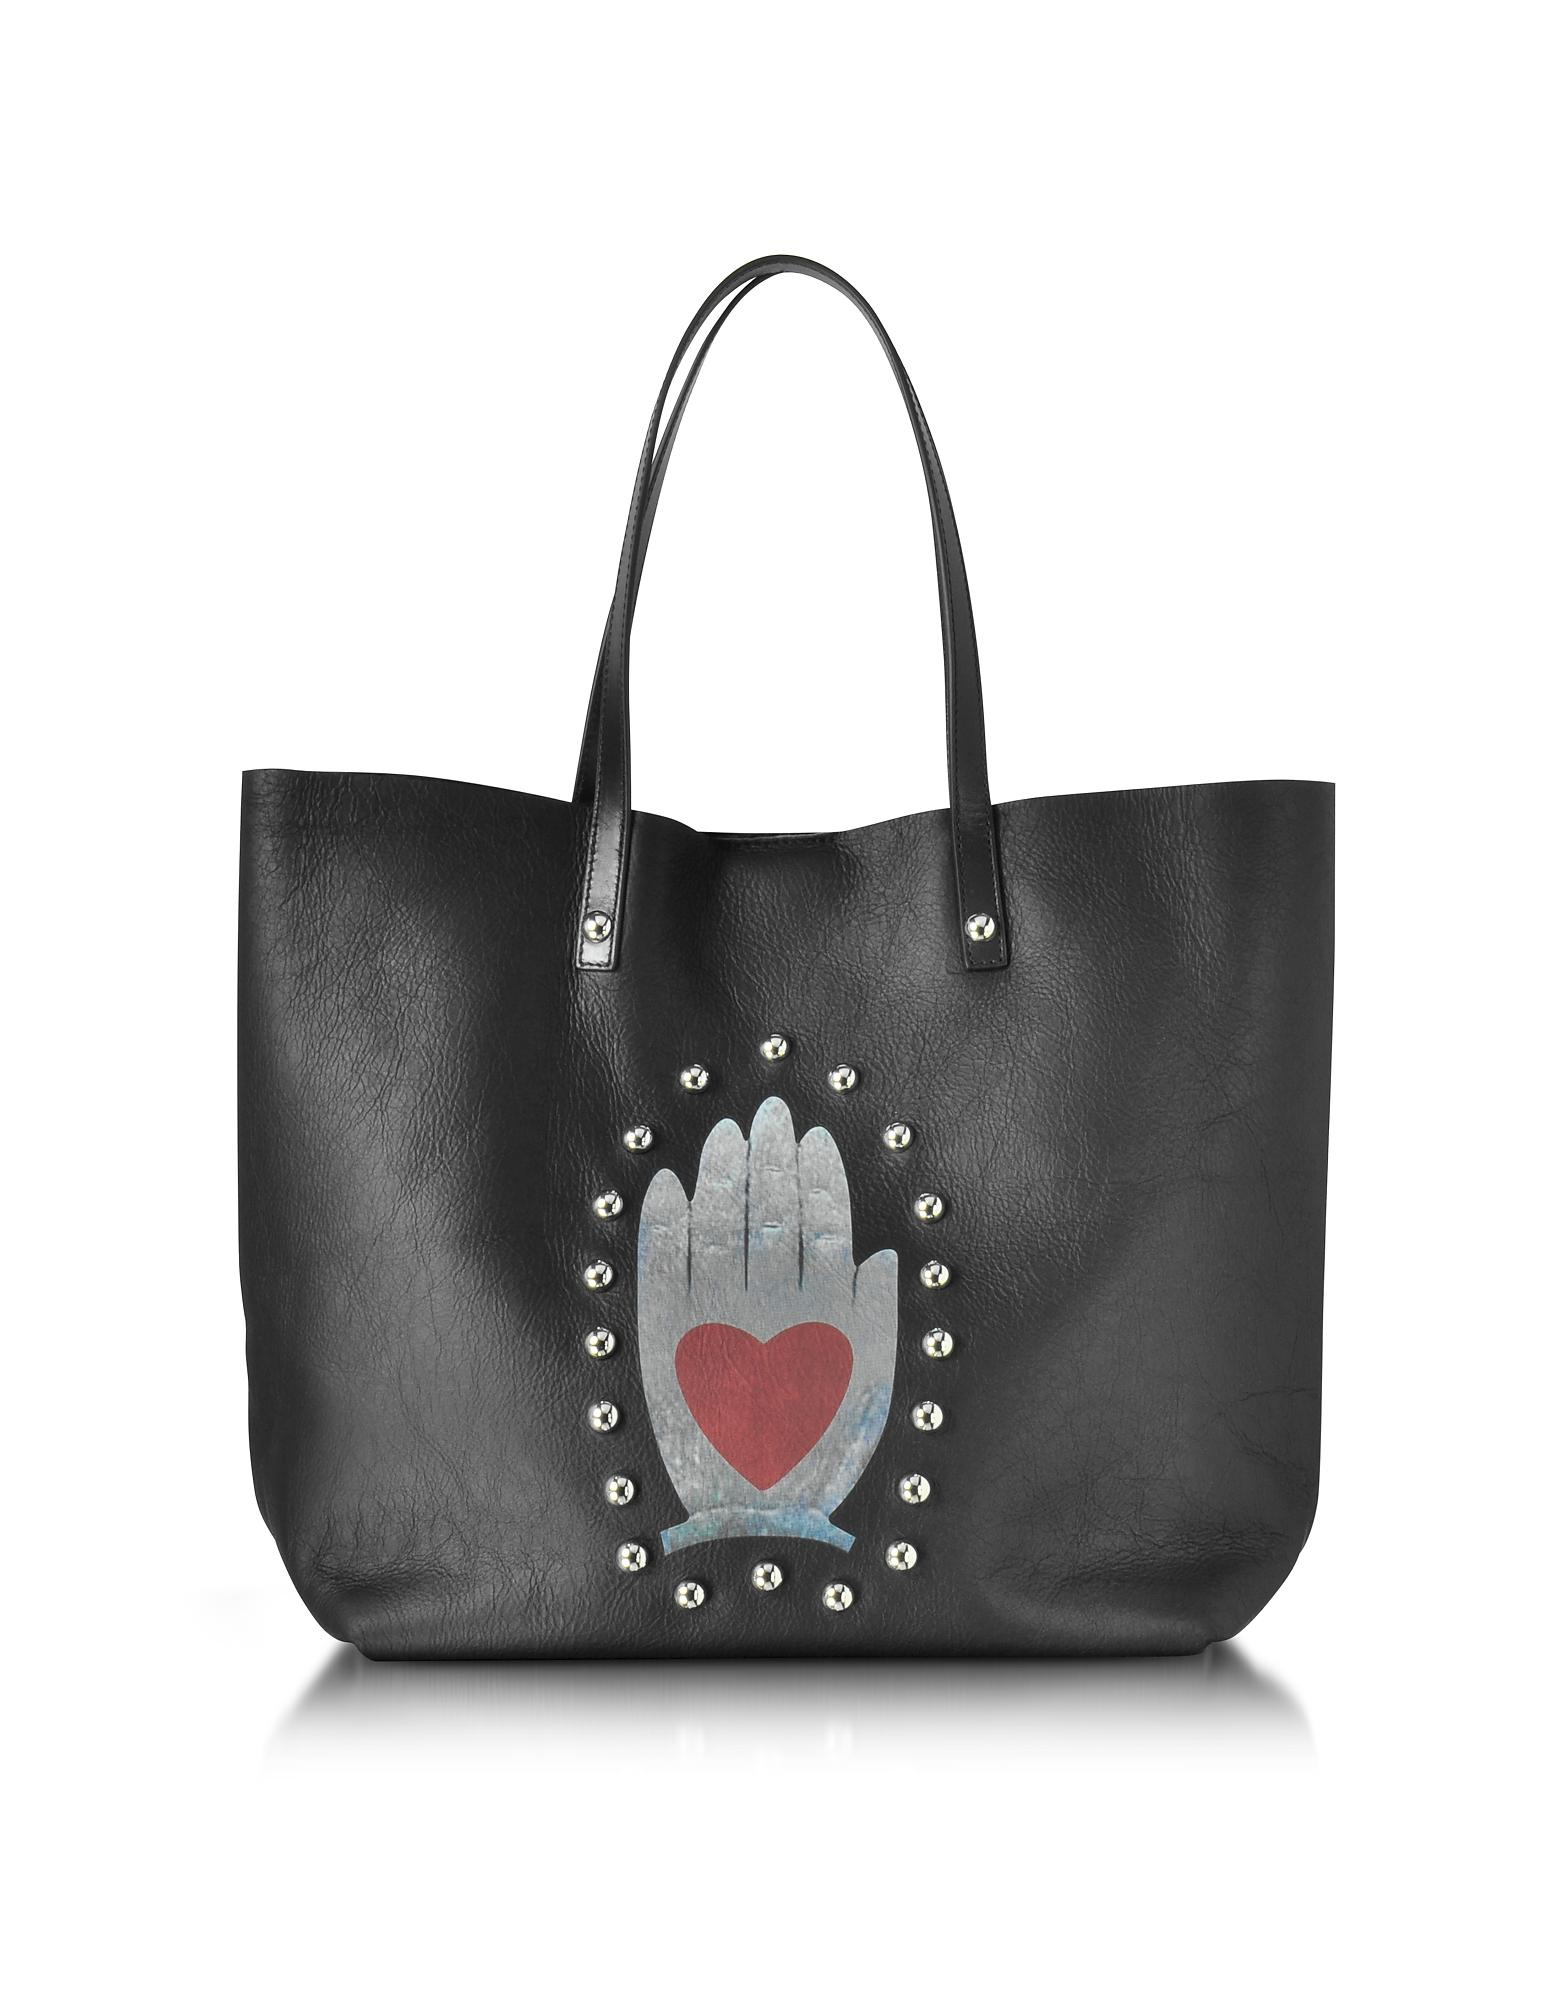 Red Valentino Black Leather Tote Bag